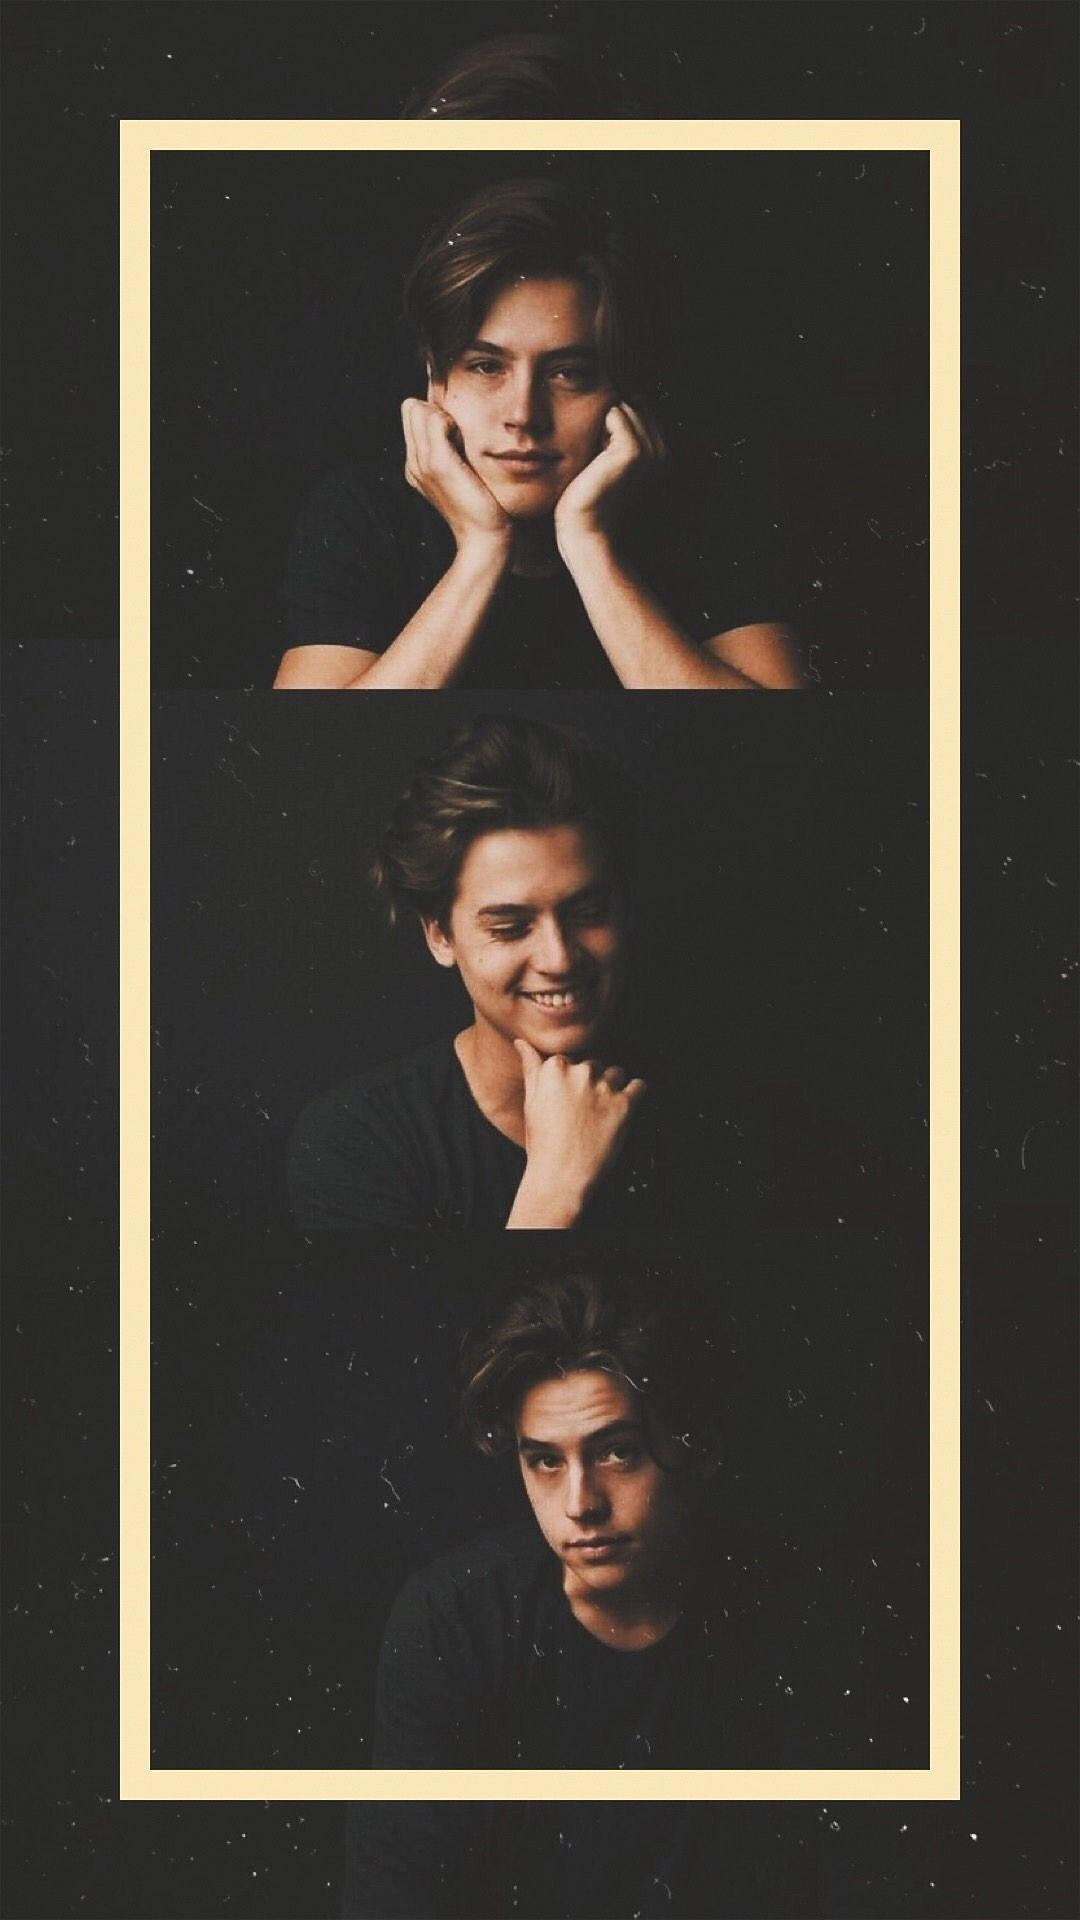 Pin On Colesprouse